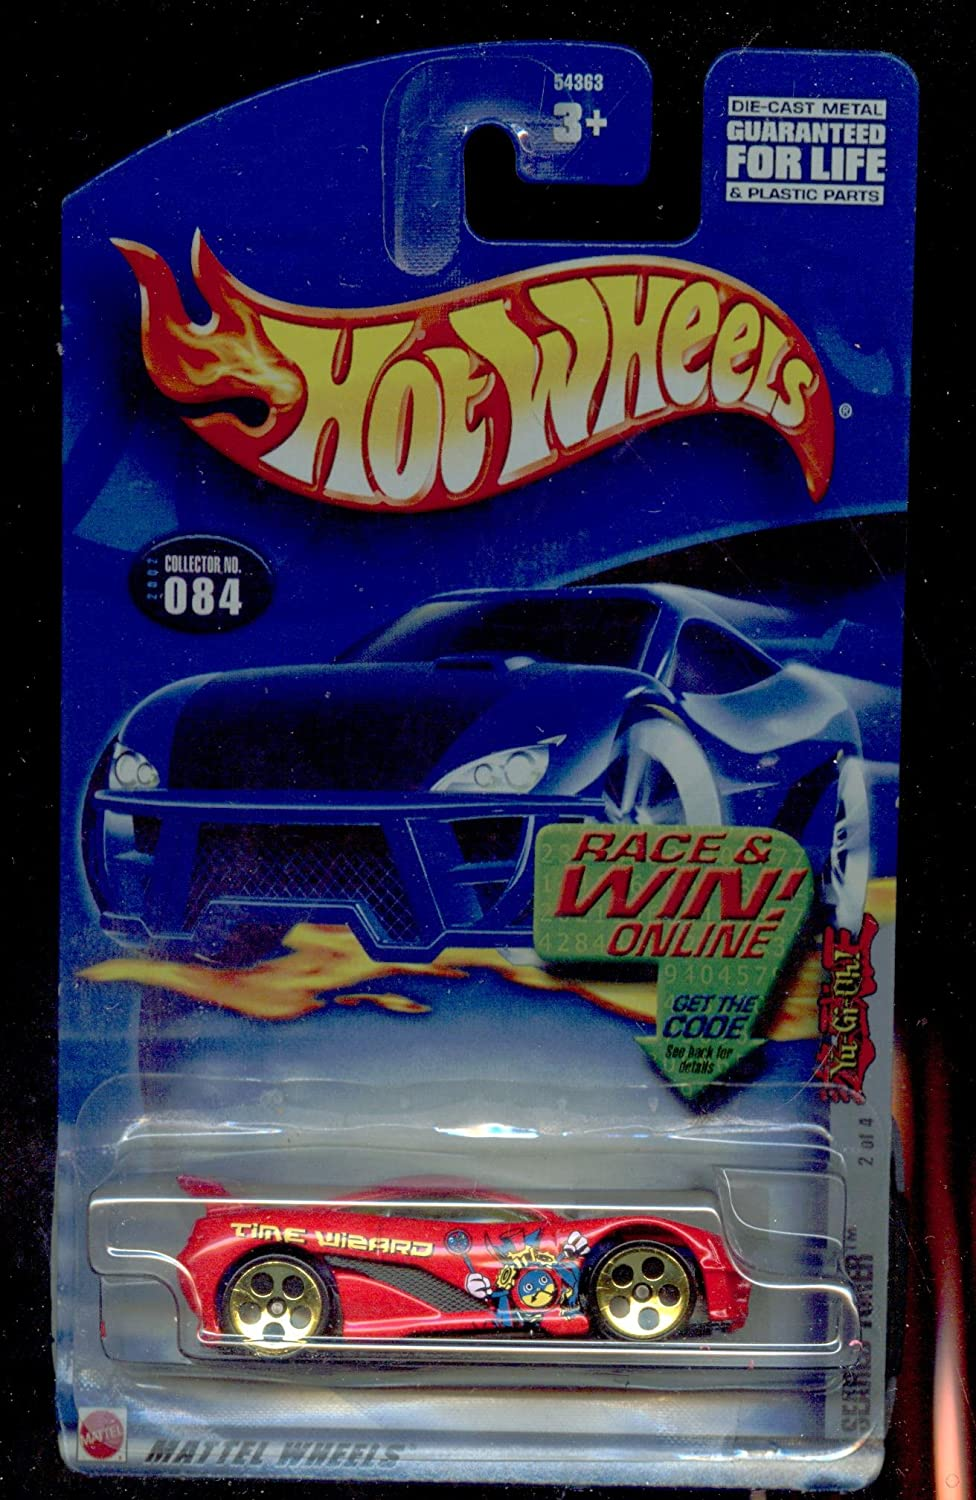 Hot Wheels 2002-084 Seared Tuner 2 of 4 Race and WIN Card 1:64 Scale by Mattel